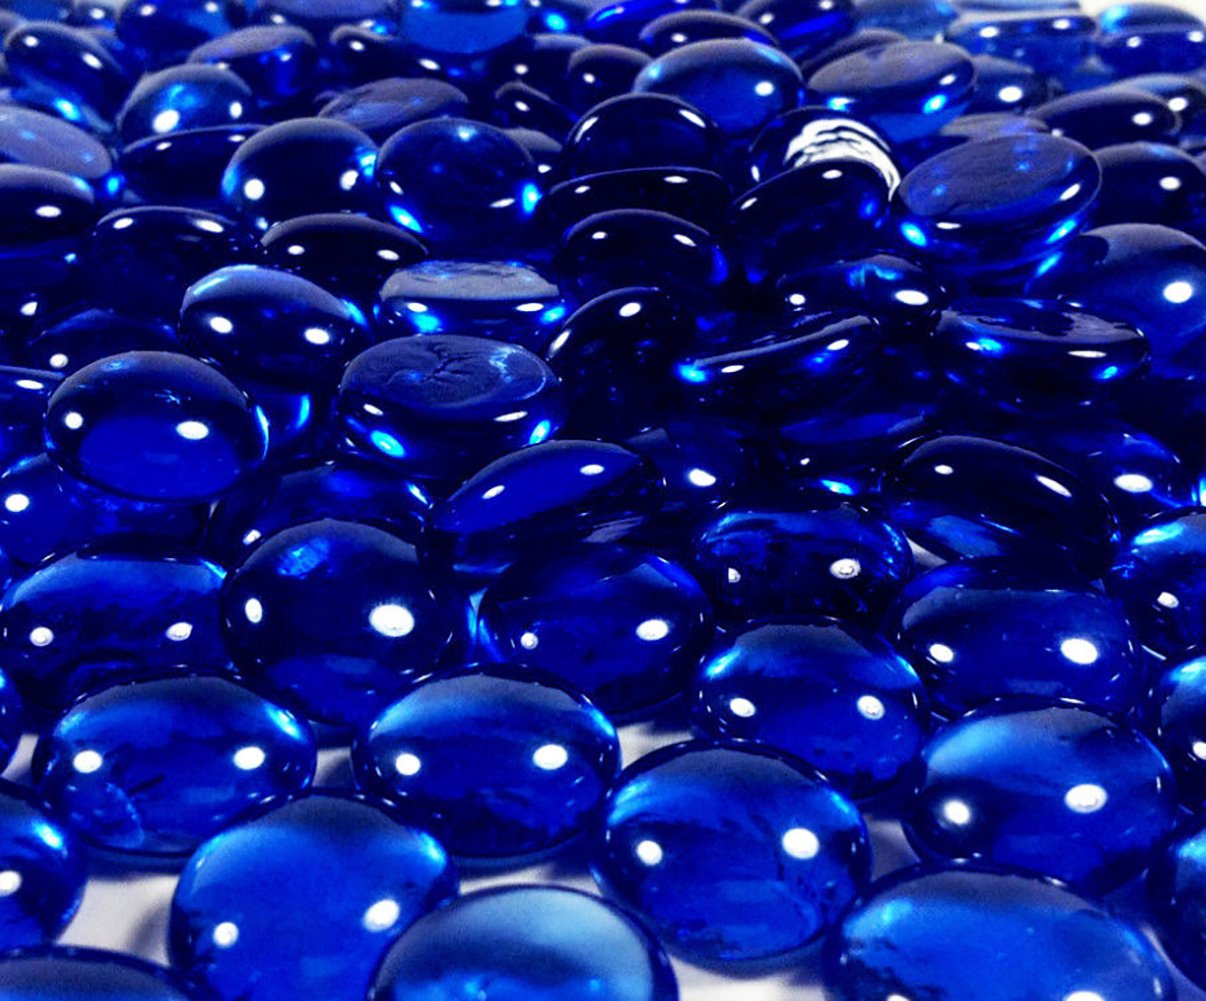 Safe & Non-Toxic {Large Size, 0.75'' Inch} 10 Pound Bag of Clear Gravel, Rocks & Stones Decor Made of Genuine Glass for Freshwater & Saltwater Aquarium w/ Oceanic Iridescent Deep Cobalt Style [Blue] by mySimple Products